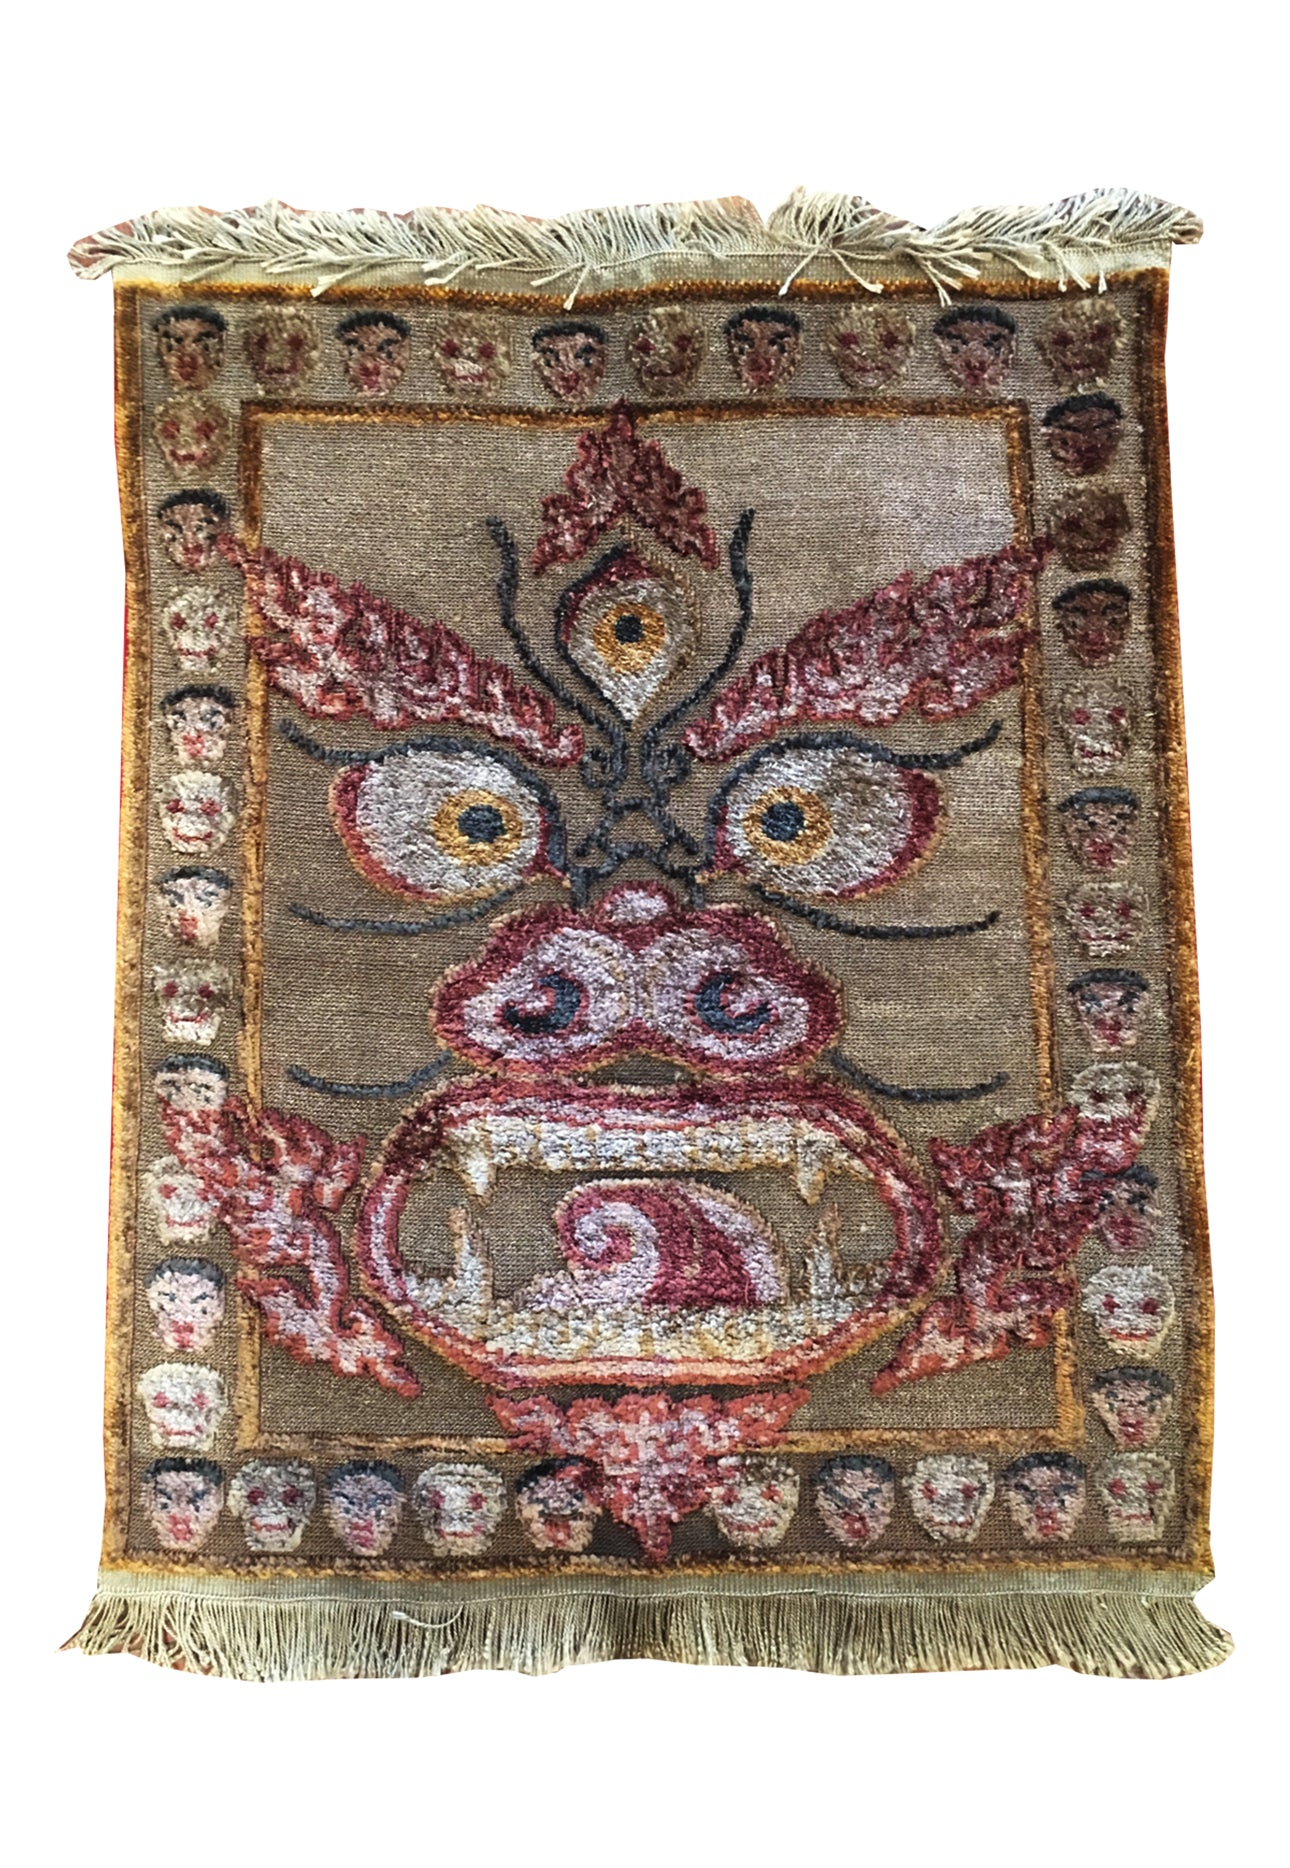 Mahakala Silver threaded Silk Rug - Tibet Arts & Healing